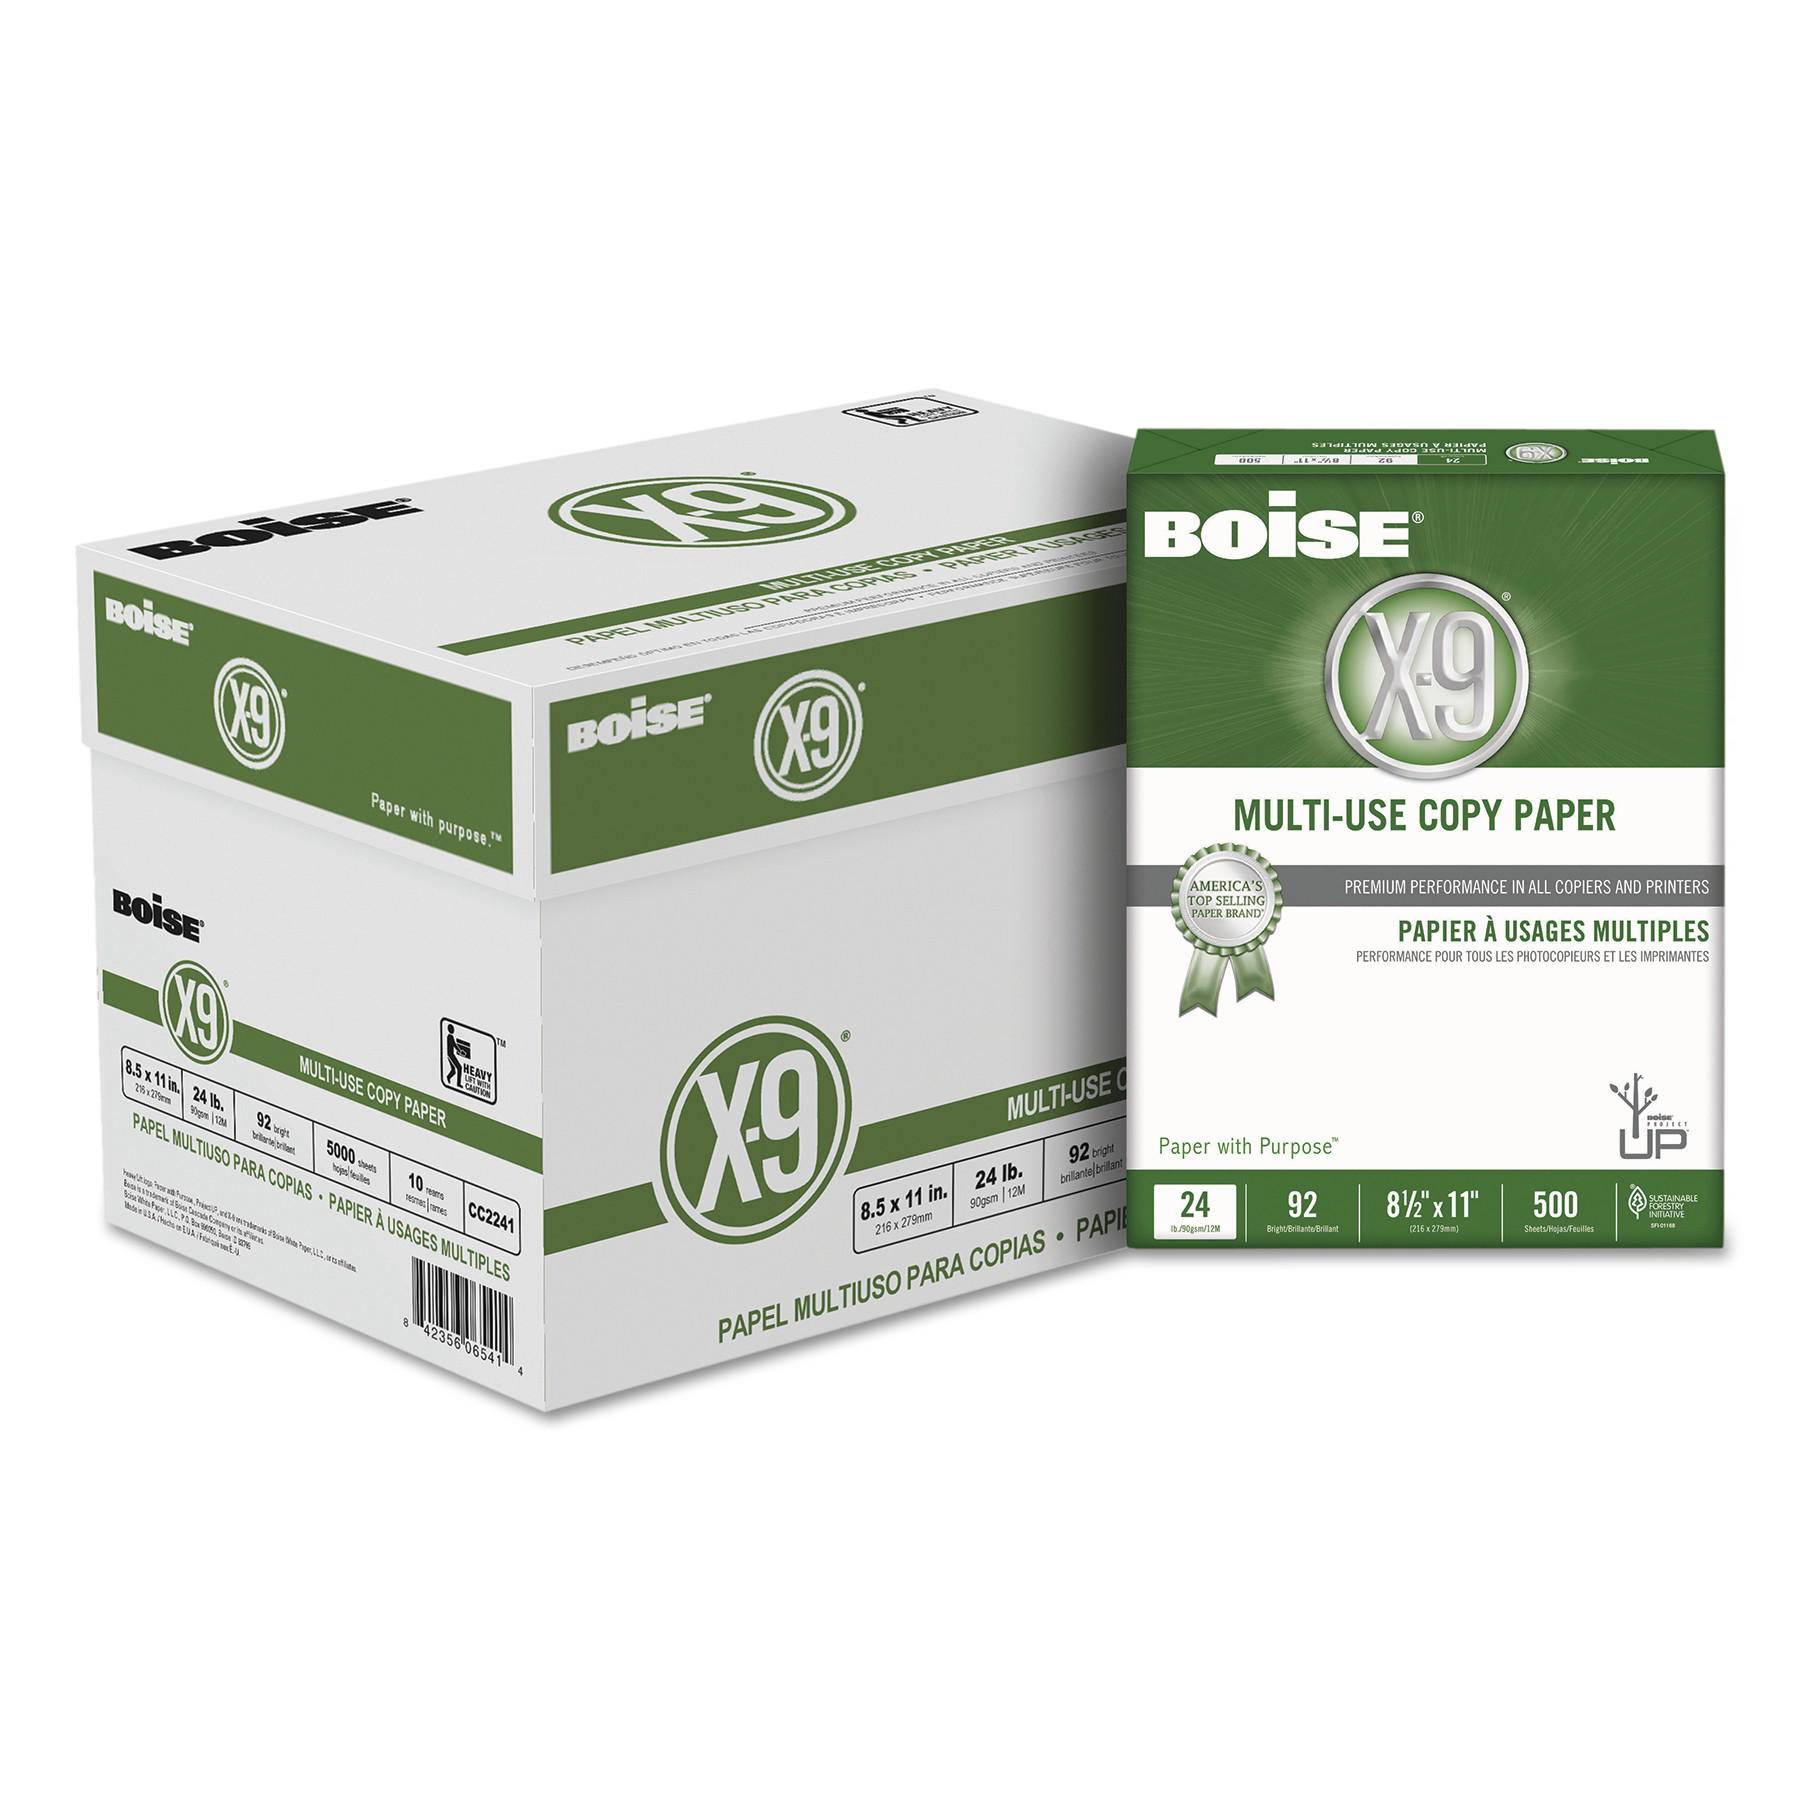 Boise X-9 Multi-Use Copy Paper, 24lb, 8 1 2 x 11, White, 500 Ream, 10 Reams Carton by CASCADES